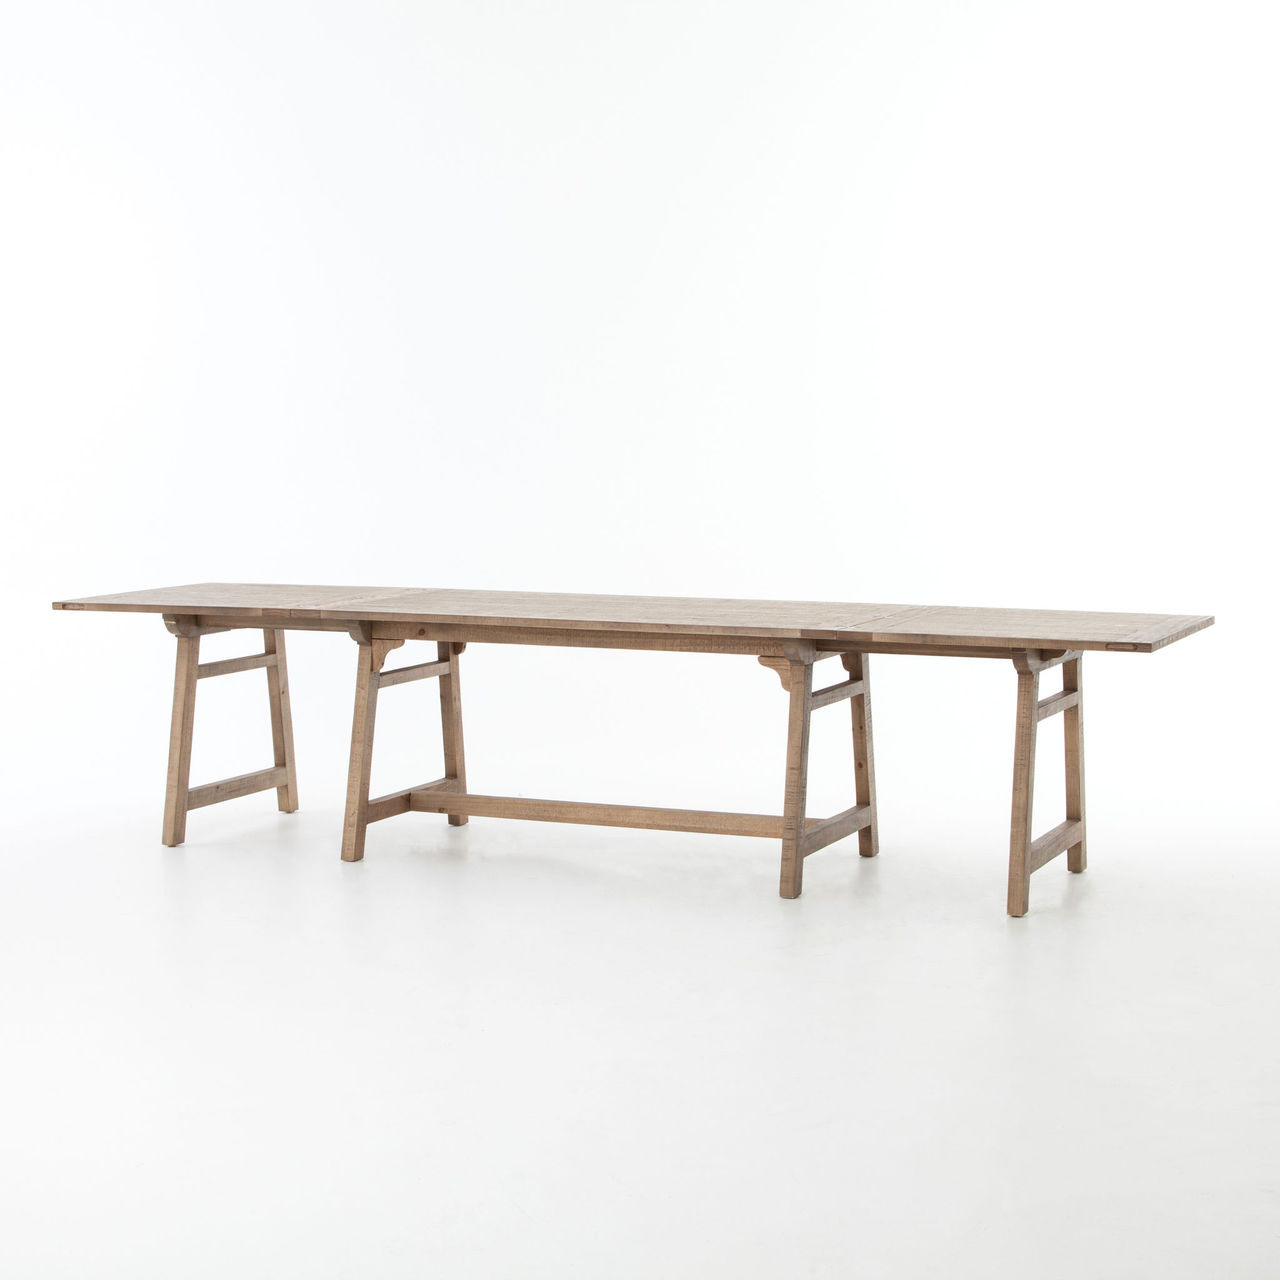 Spanish Reclaimed Wood Extension Dining Table Zin Home : SpanishReclaimedWoodExtensionDiningTable595287145221152012801280 from www.zinhome.com size 1280 x 1280 jpeg 60kB